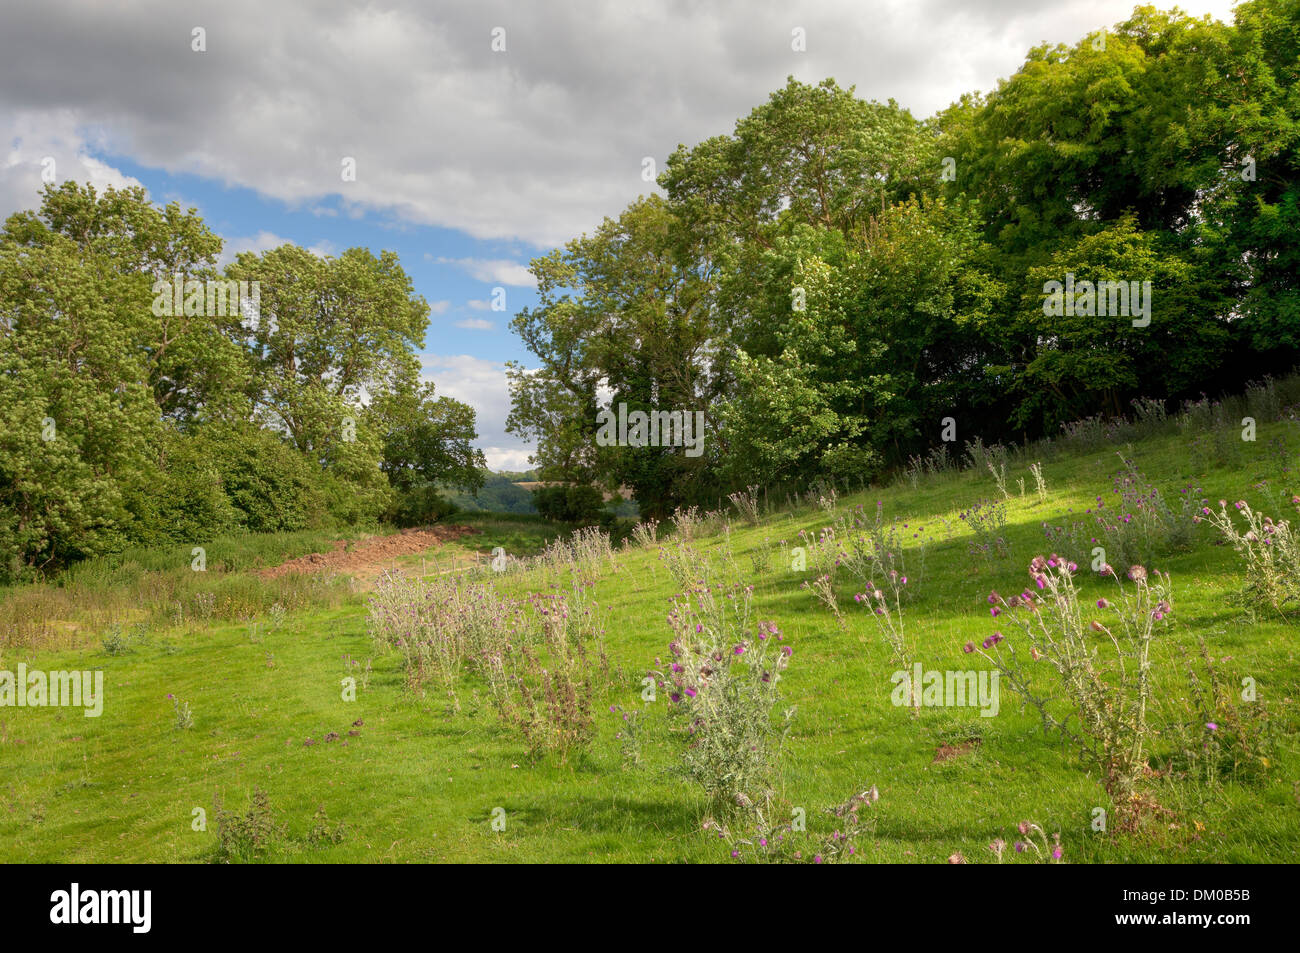 English countryside with oak trees and thistles, Gloucestershire, England. - Stock Image